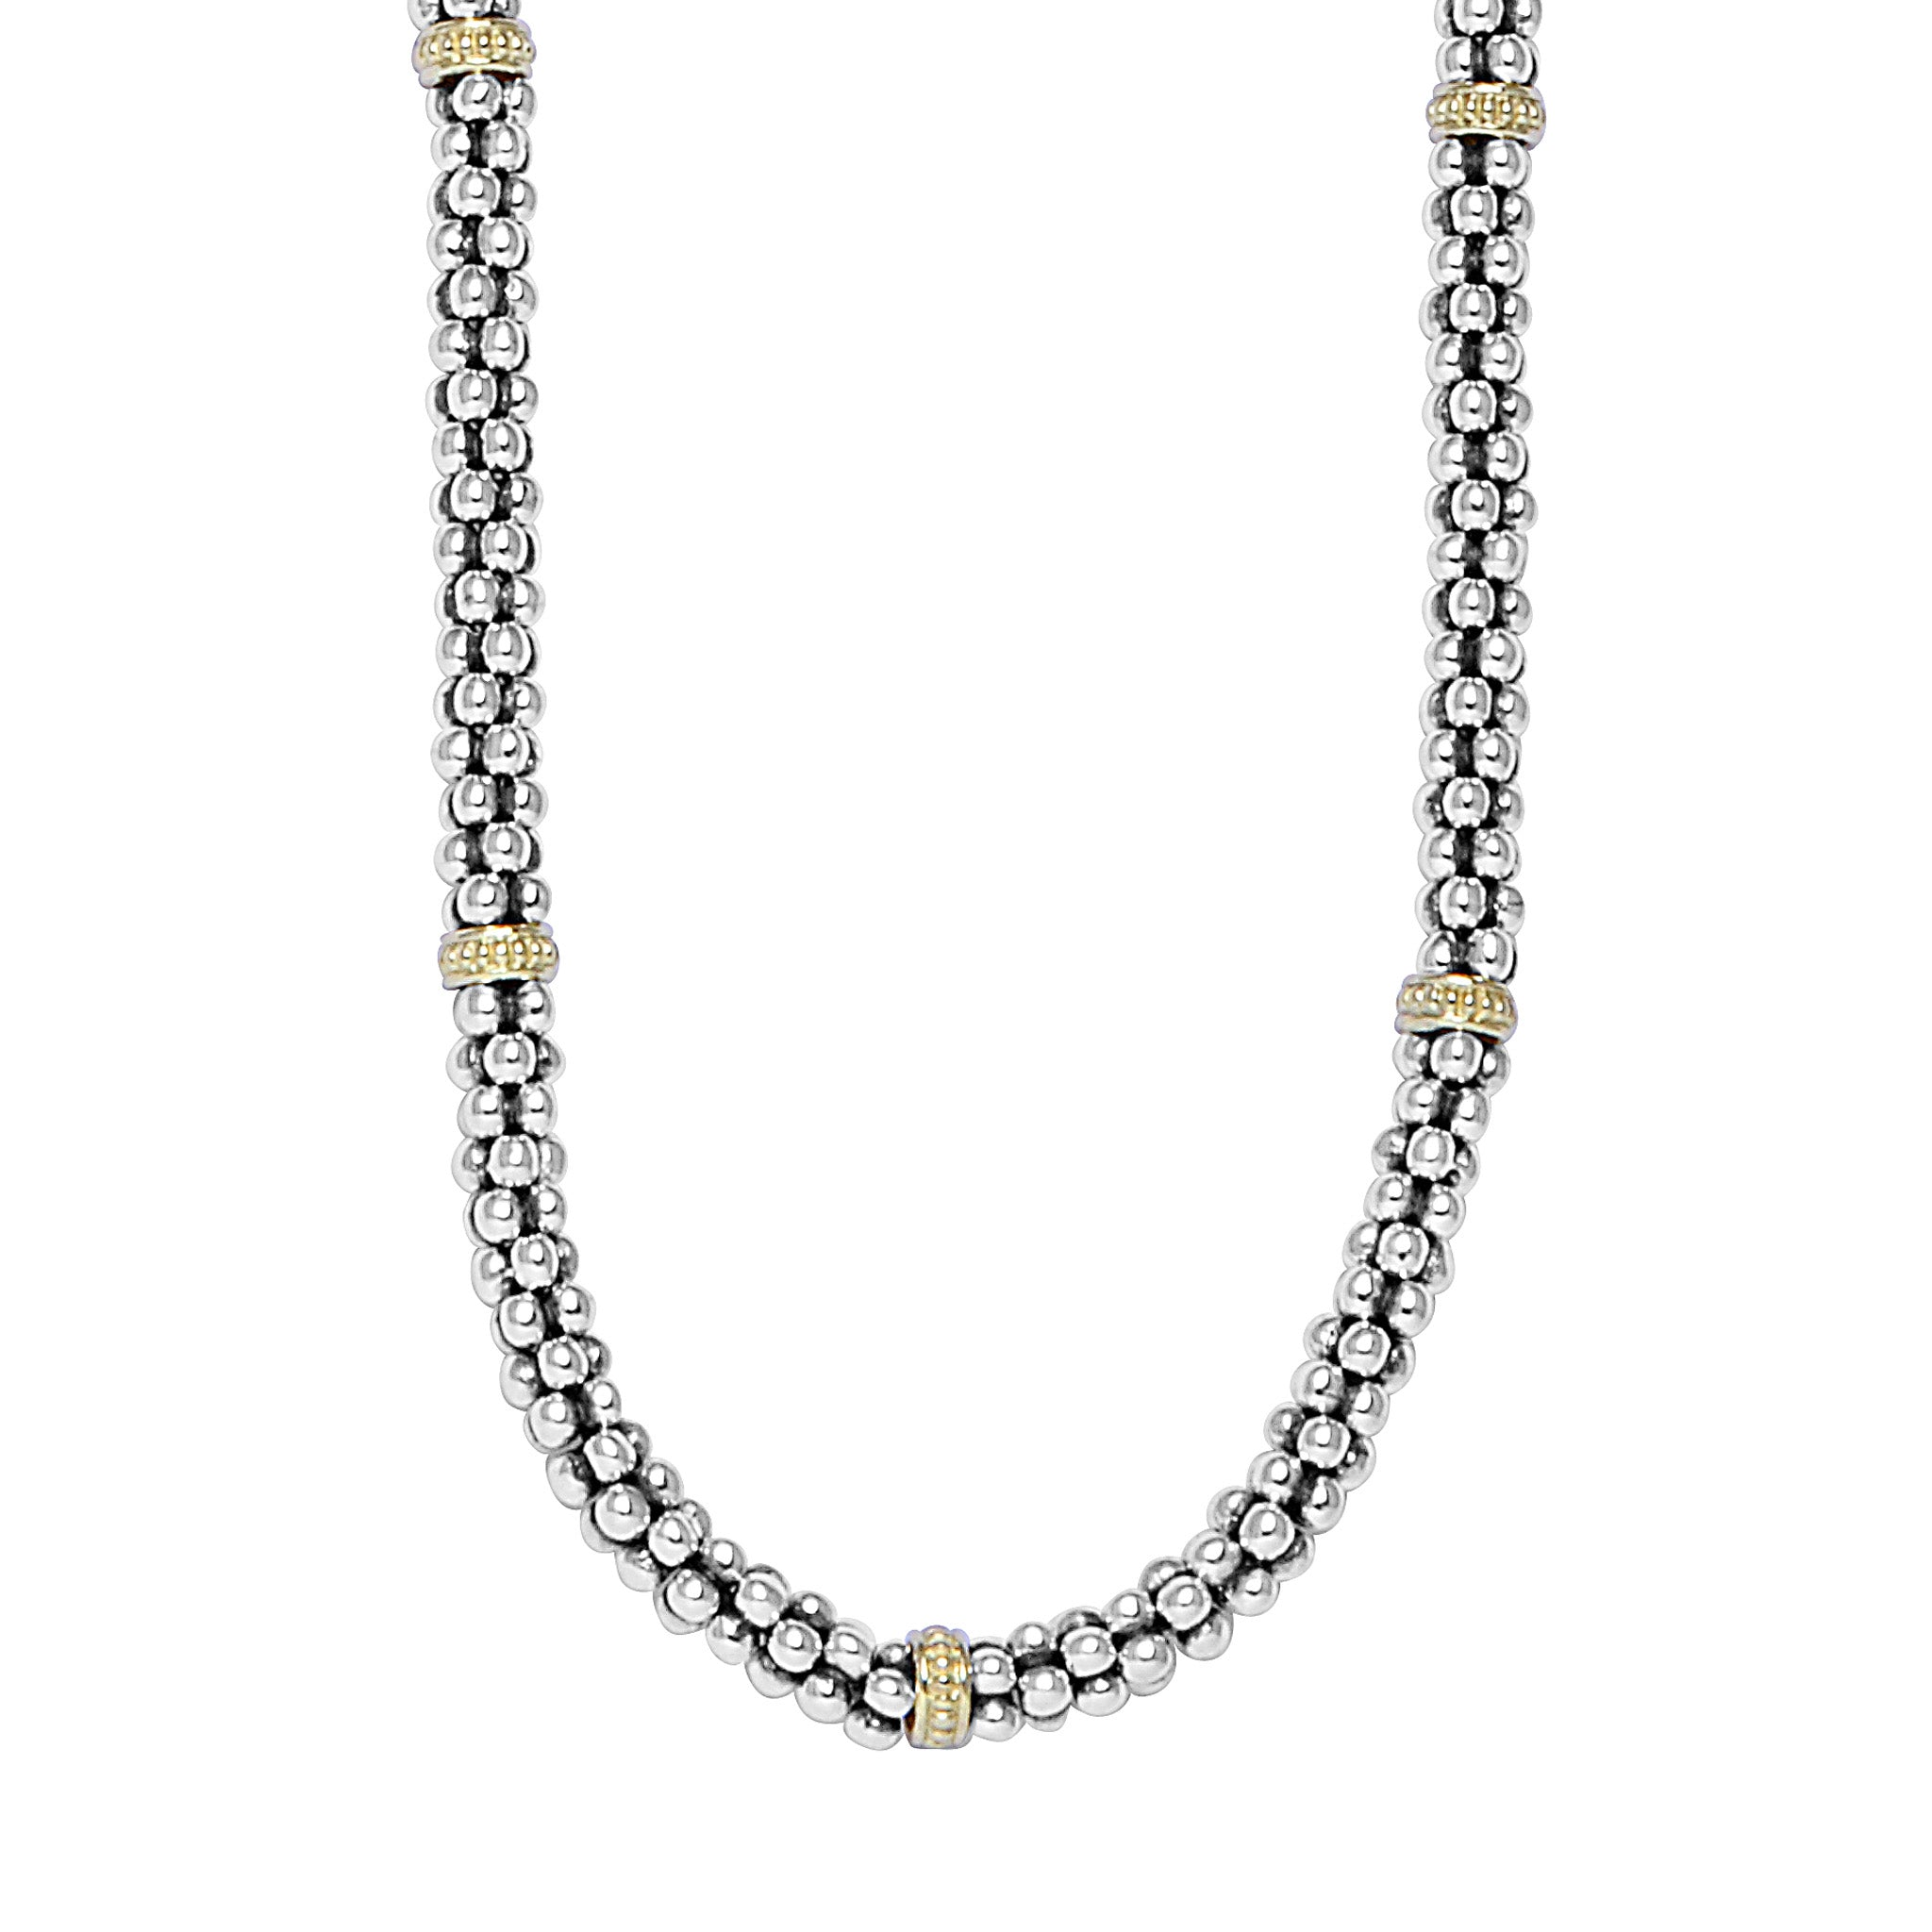 Lagos 'Signature Caviar' Beaded Necklace with Gold